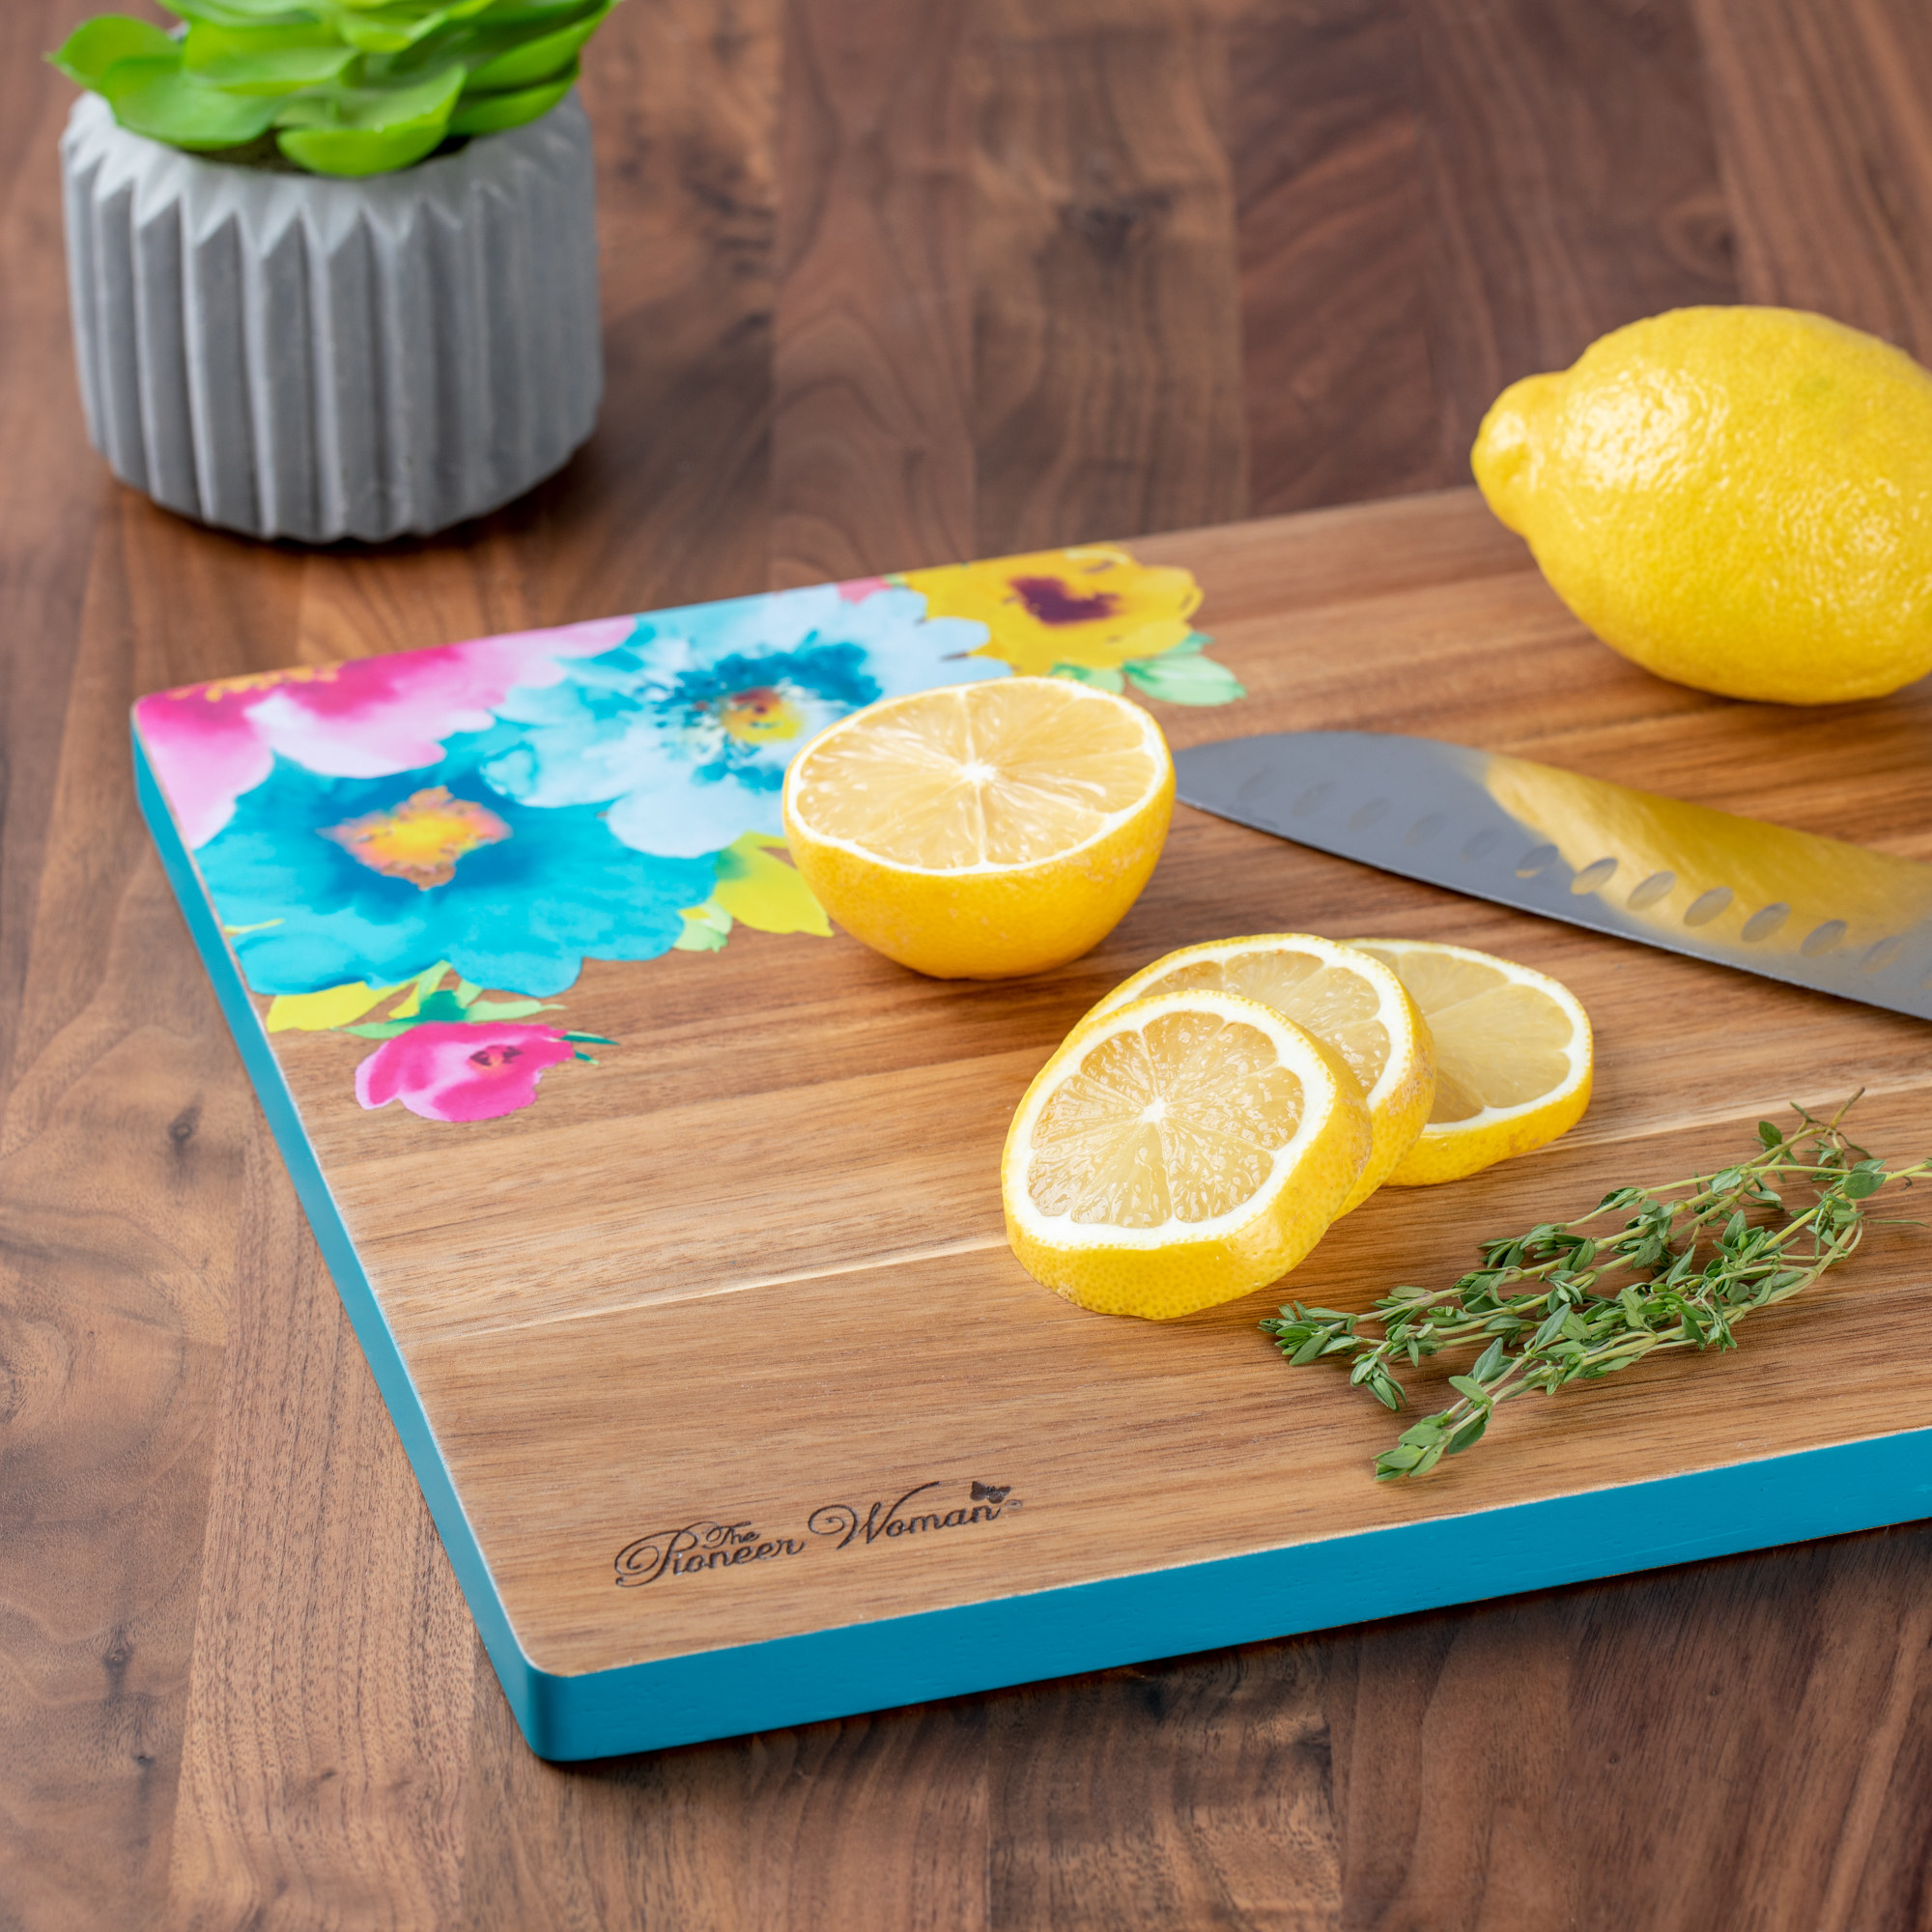 A wooden cutting board with teal edges and teal, pink, and yellow flowers drawn on the surface